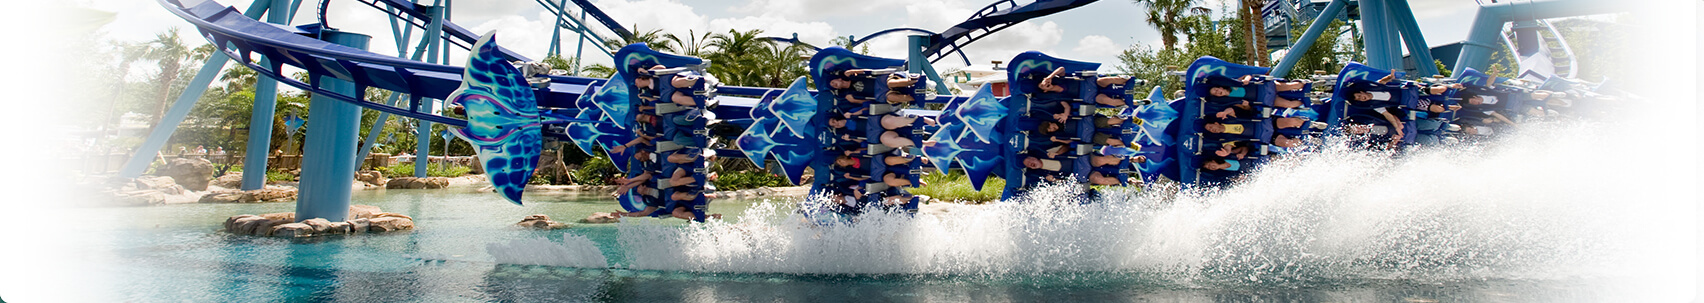 SeaWorld Orlando ® Florida